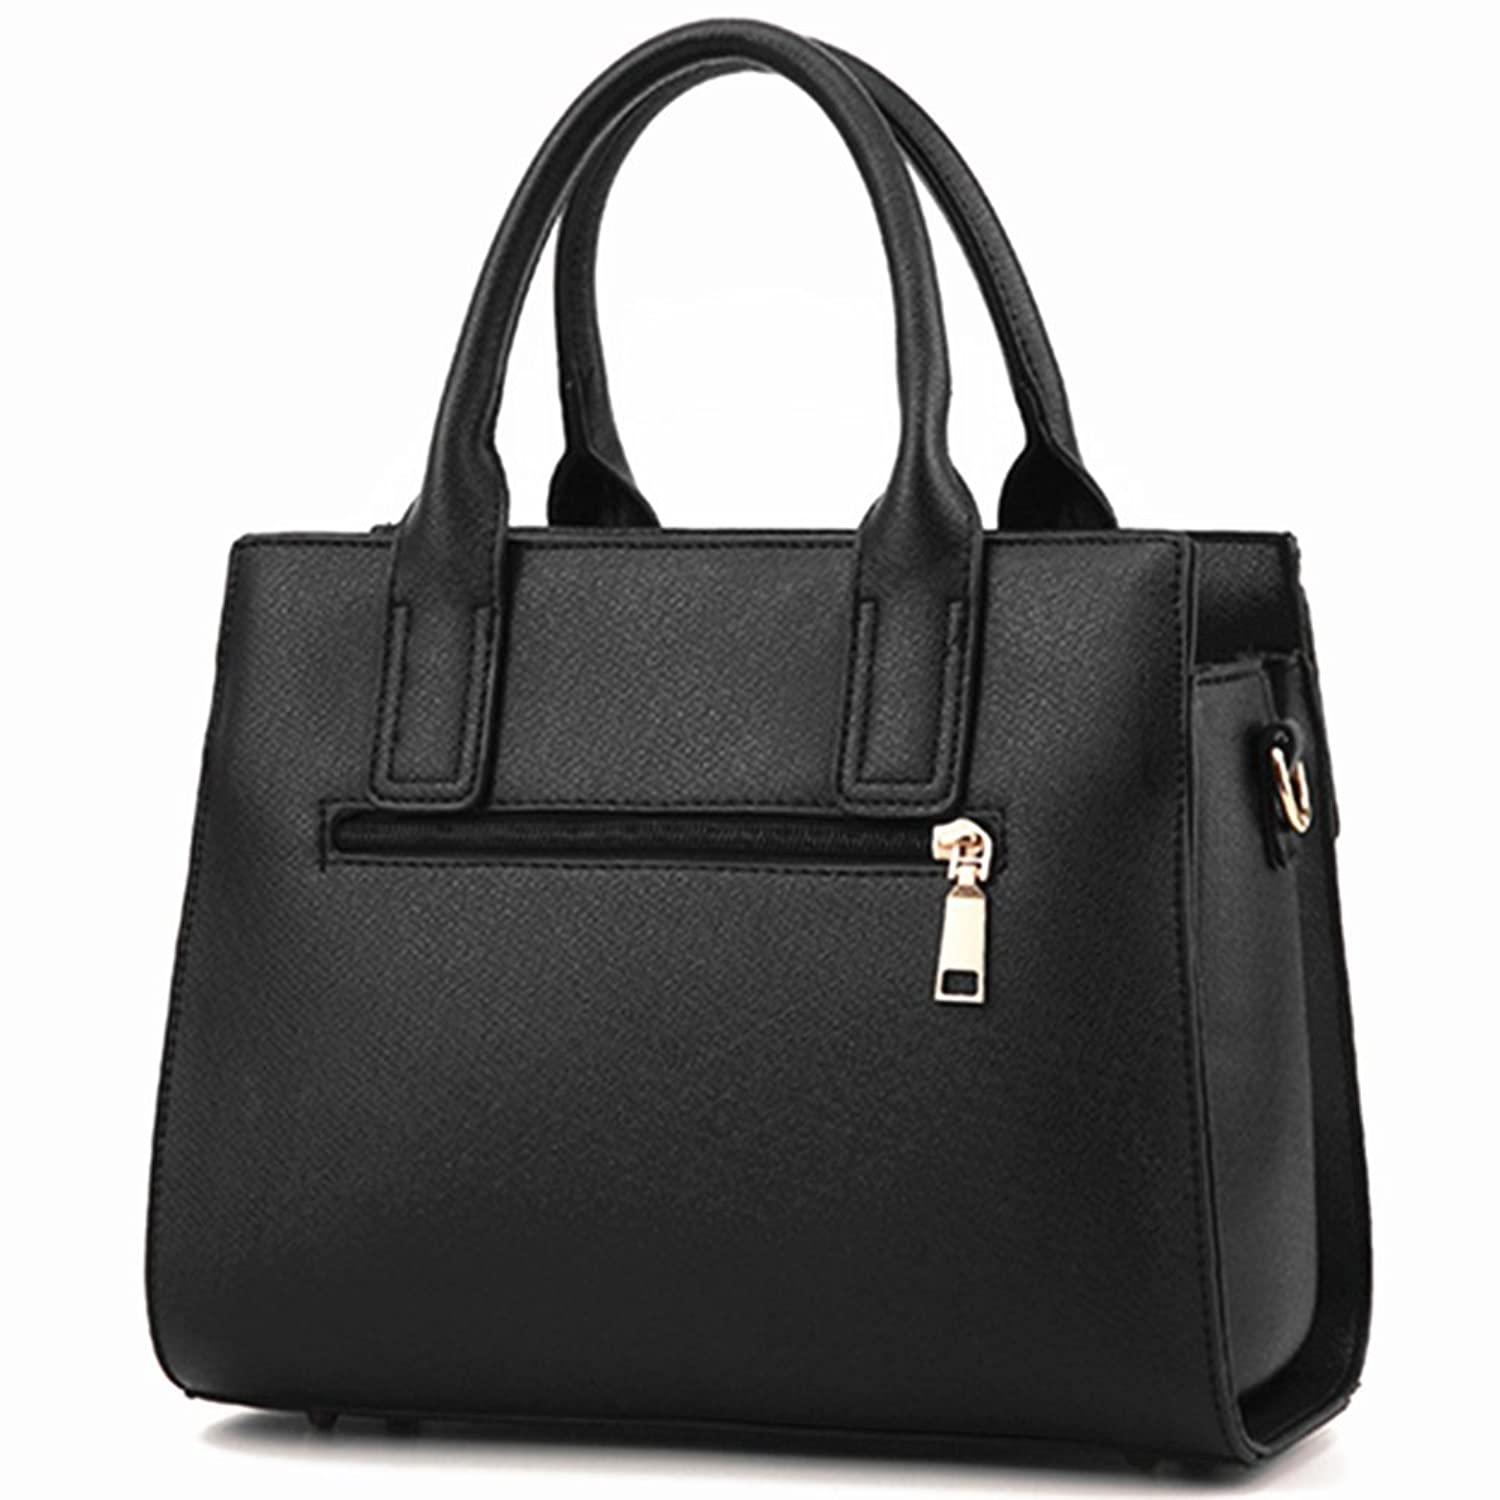 Annsin Women's HR Two-Way PU Leather Handbag and Tote Shoulder Bag